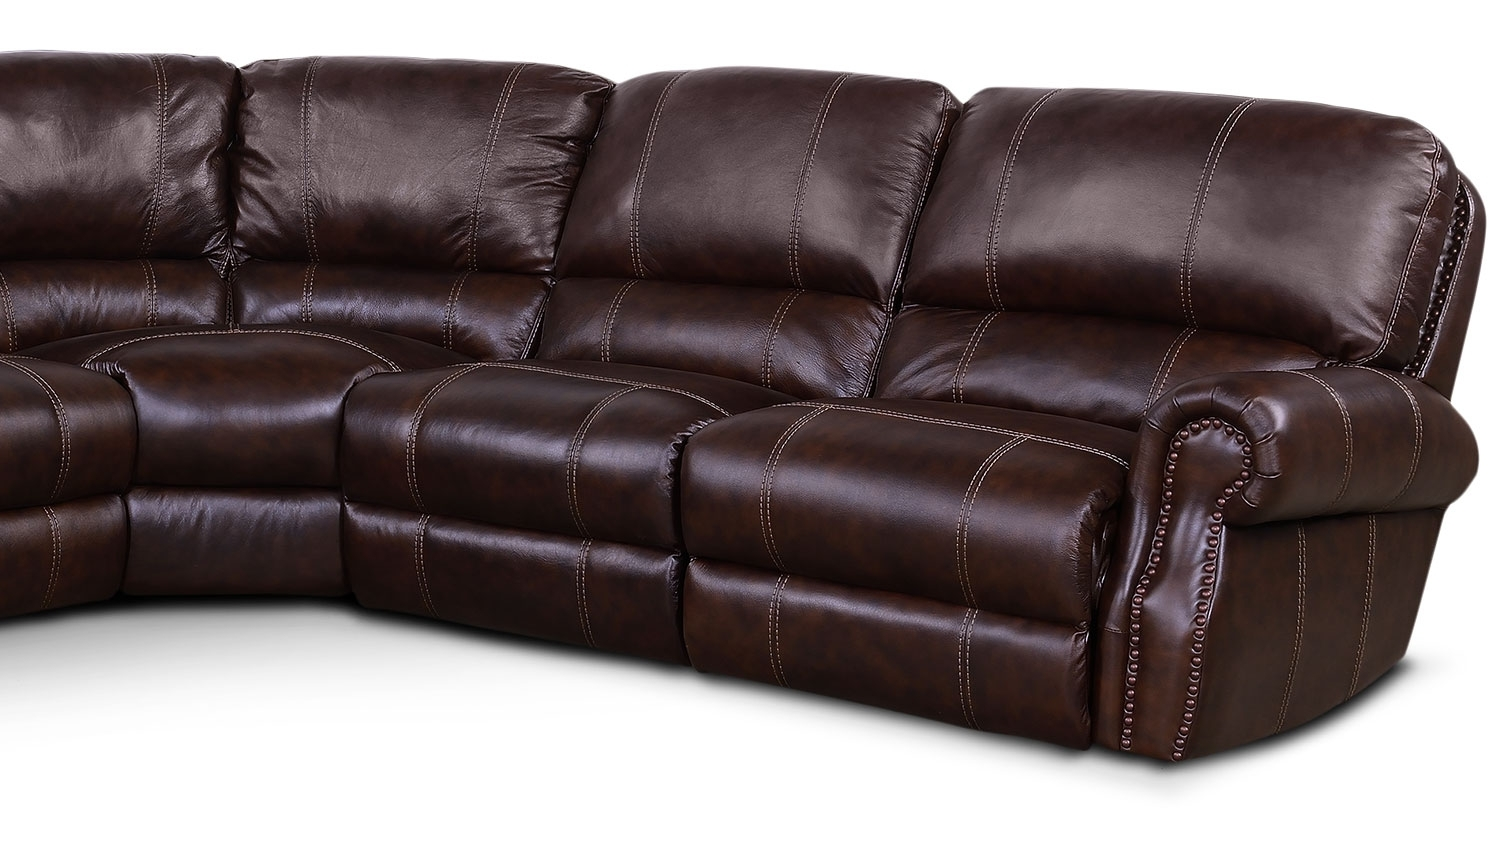 Dartmouth 6-Piece Power Reclining Sectional W/ Left-Facing Chaise throughout Norfolk Chocolate 6 Piece Sectionals (Image 11 of 30)